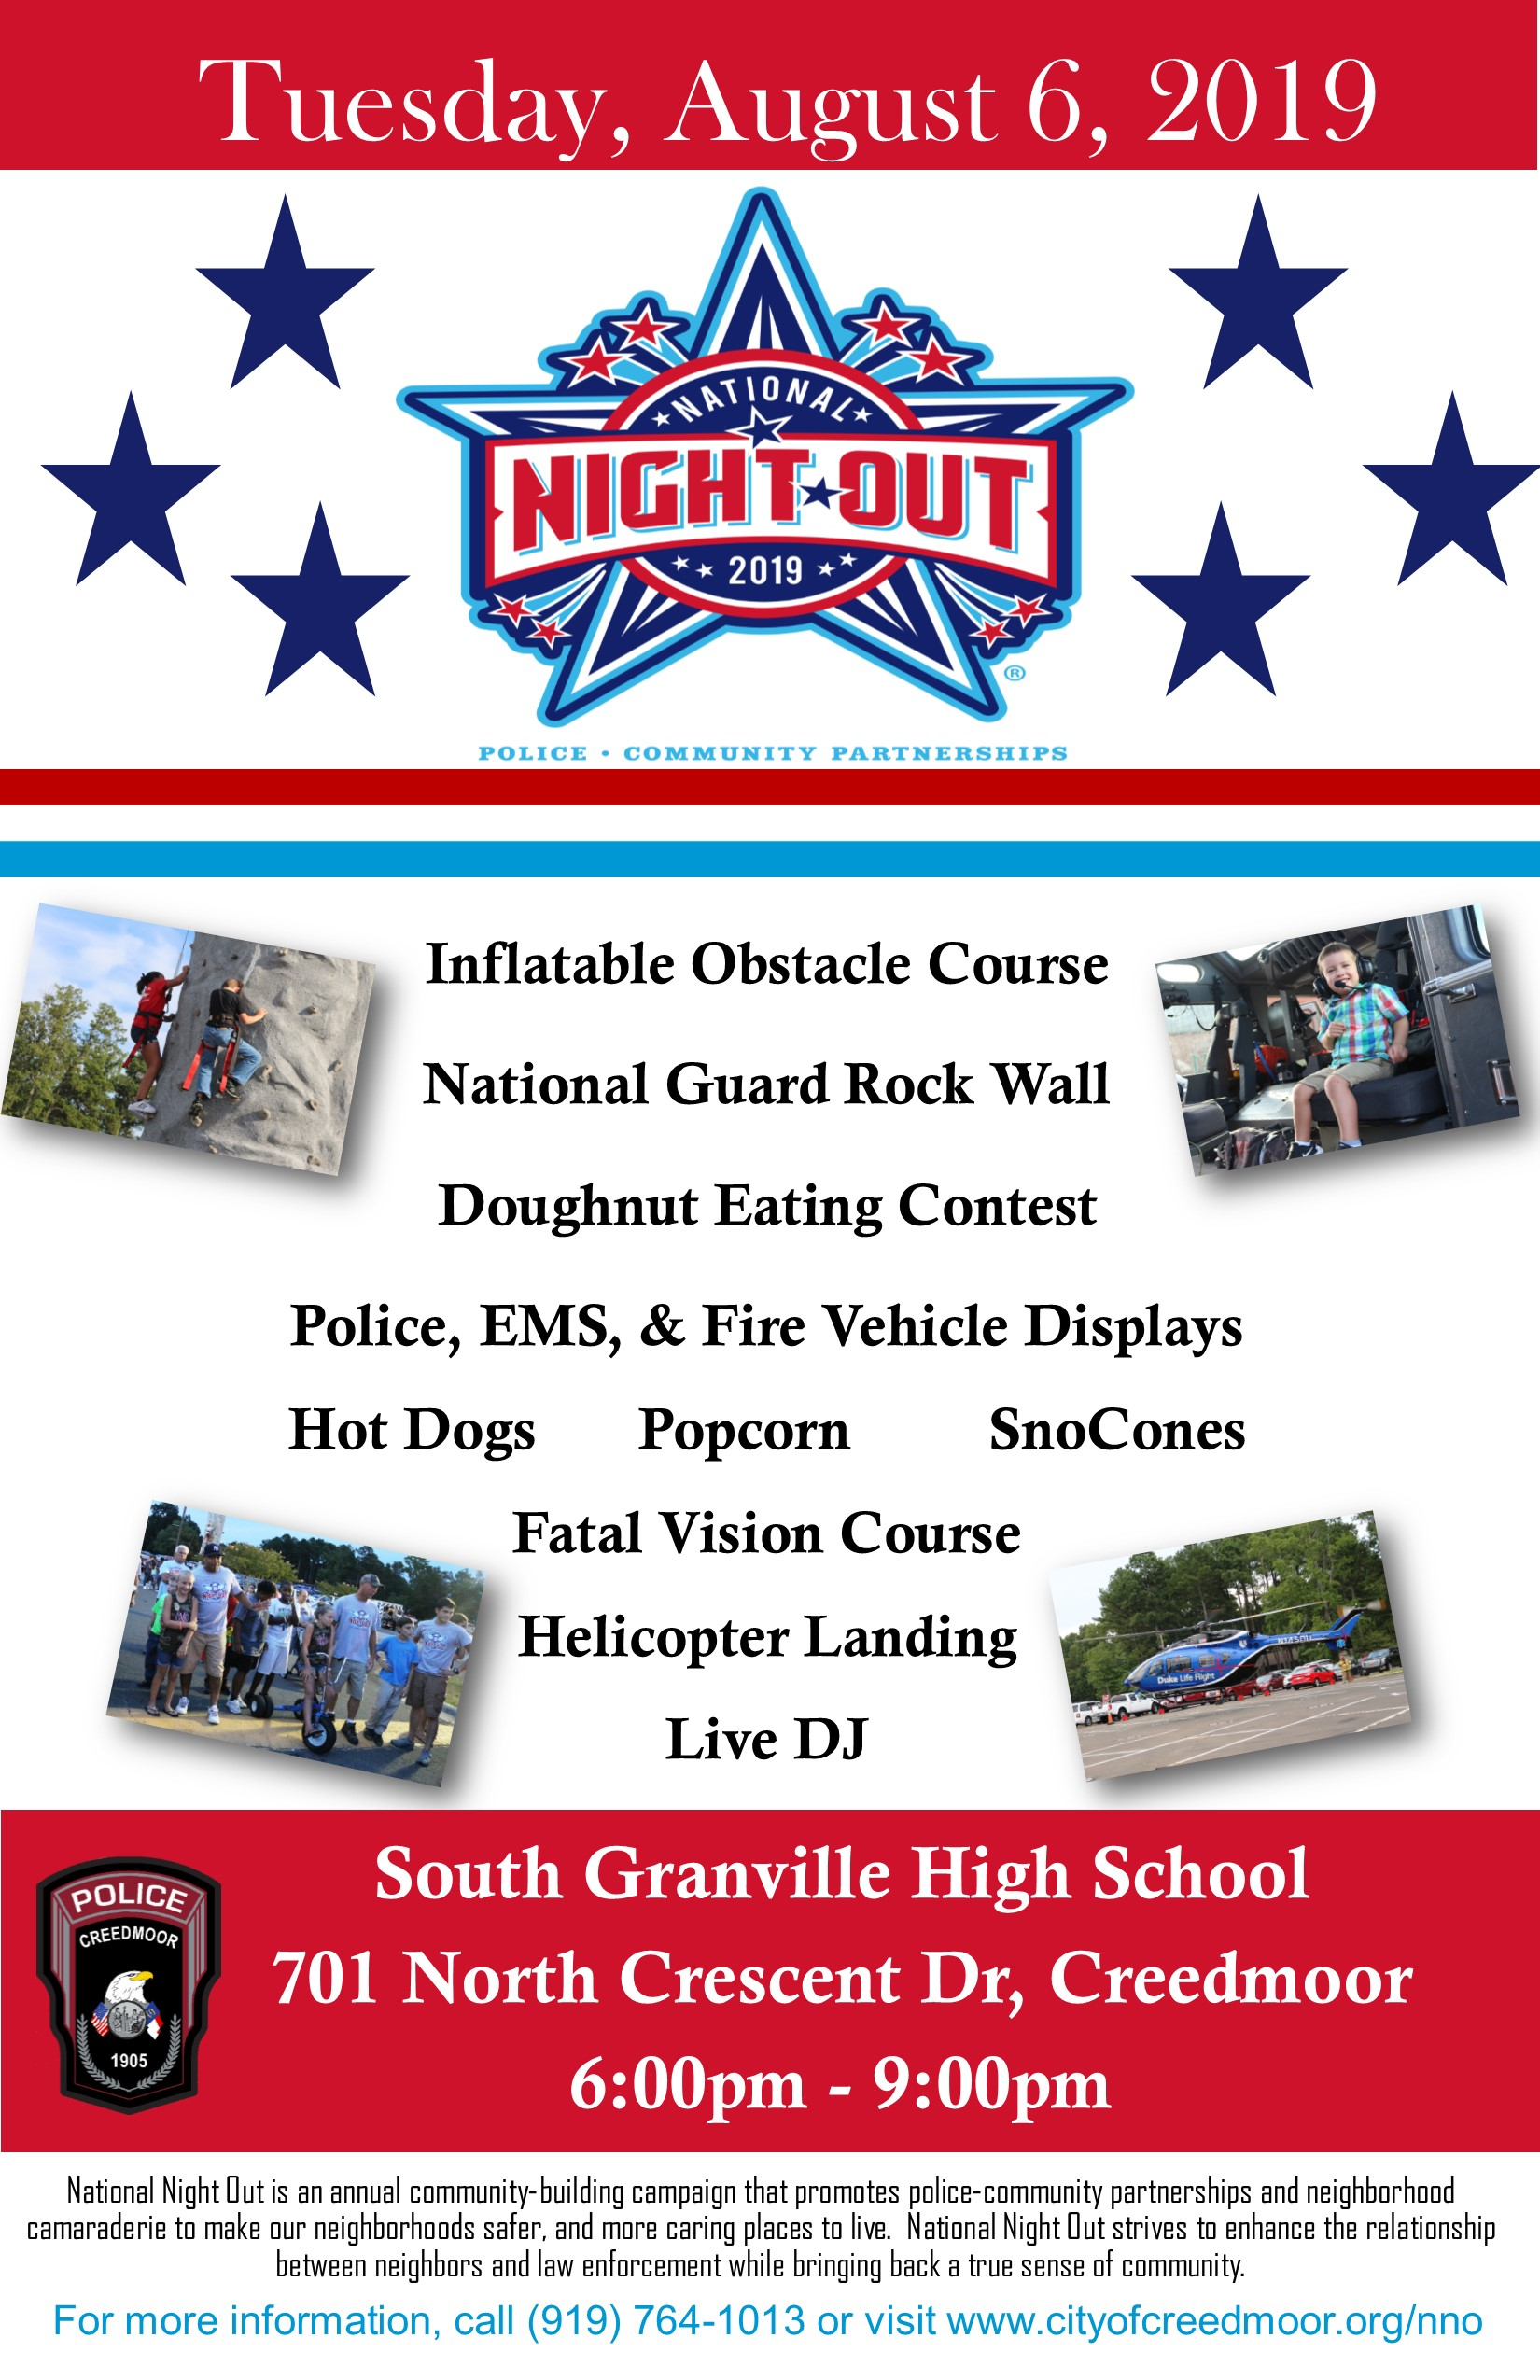 August 6 at South Granville High School